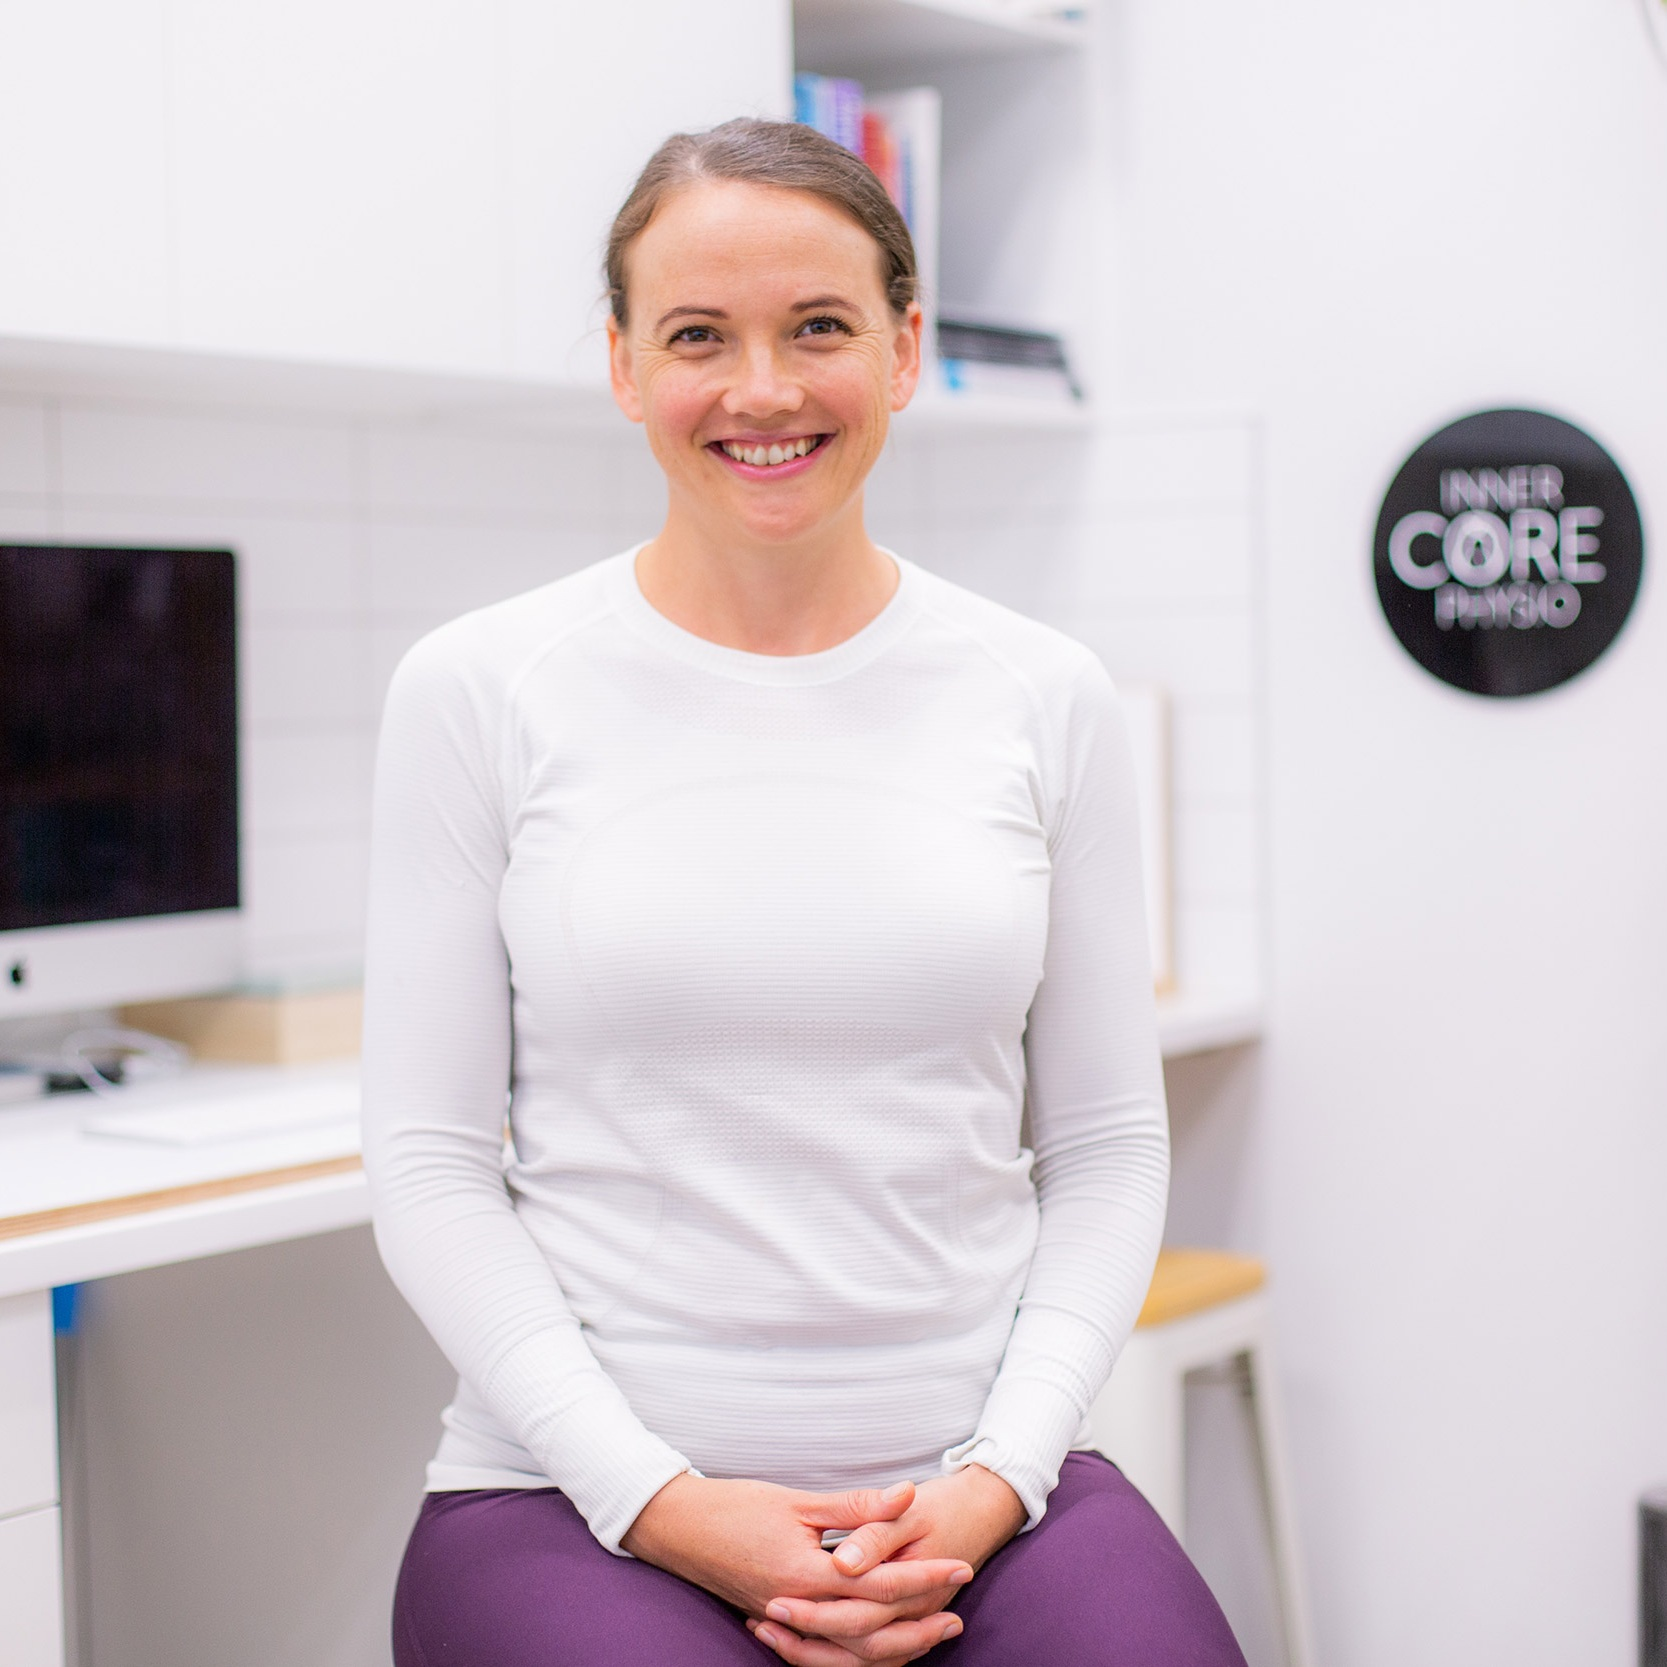 Caitlin Day - Caitlin has extensive experience in pelvic floor physiotherapy, treating a wide range of pelvic floor dysfunctions in both men and women.Learn More